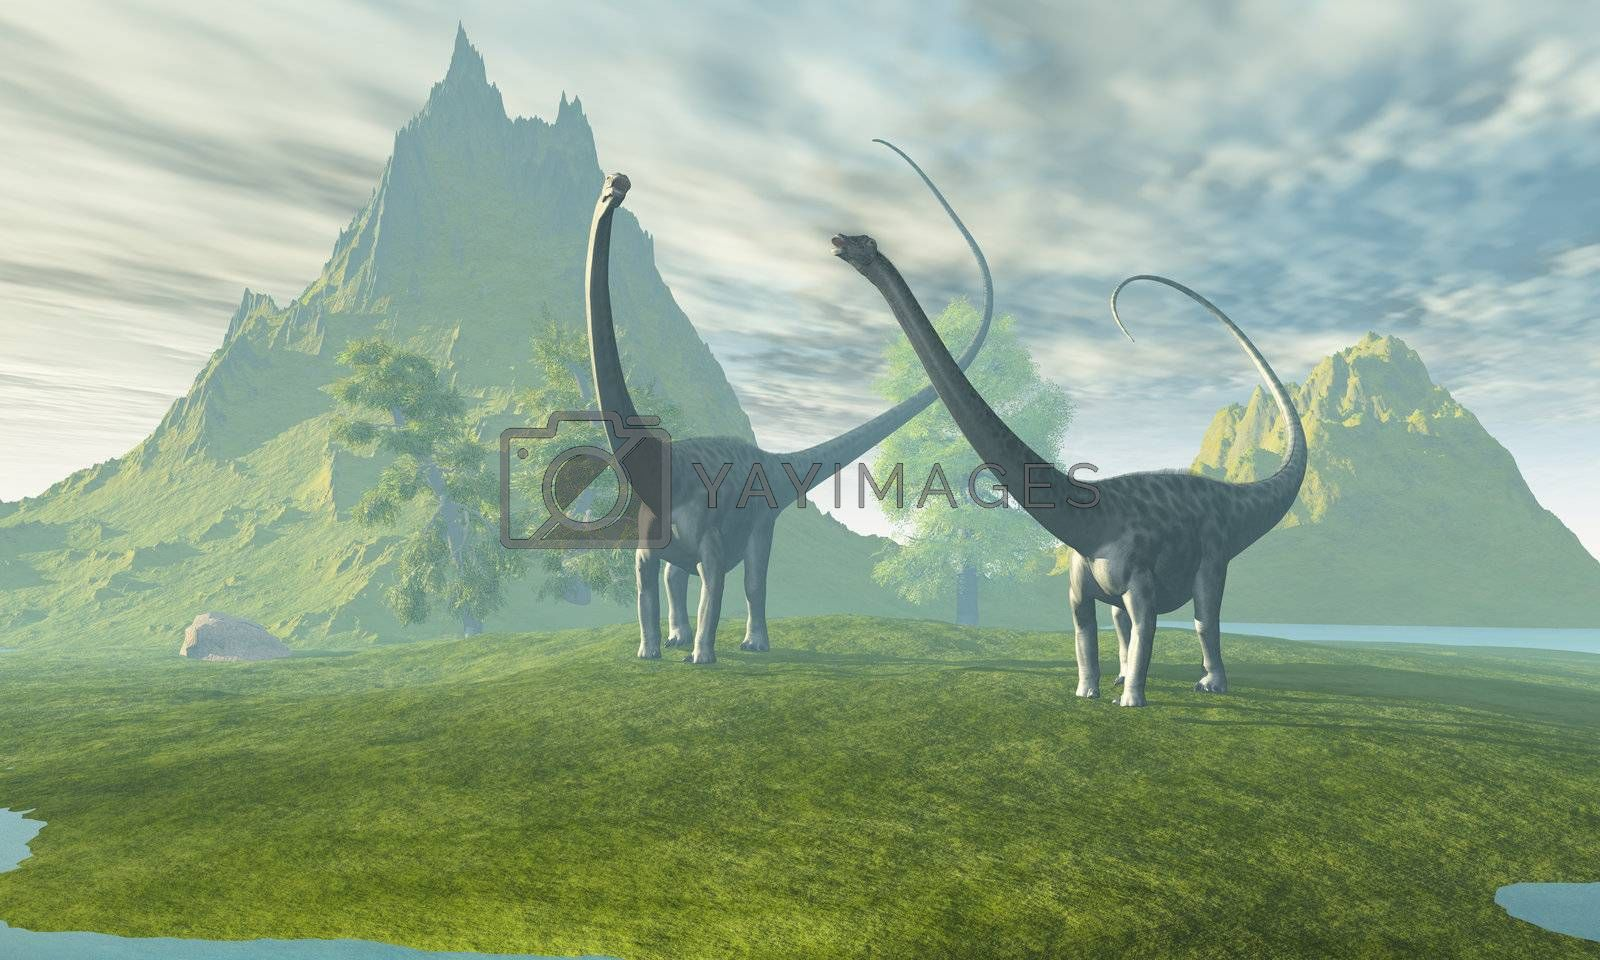 Two Diplodocus dinosaurs walk together in the afternoon in the prehistoric age.